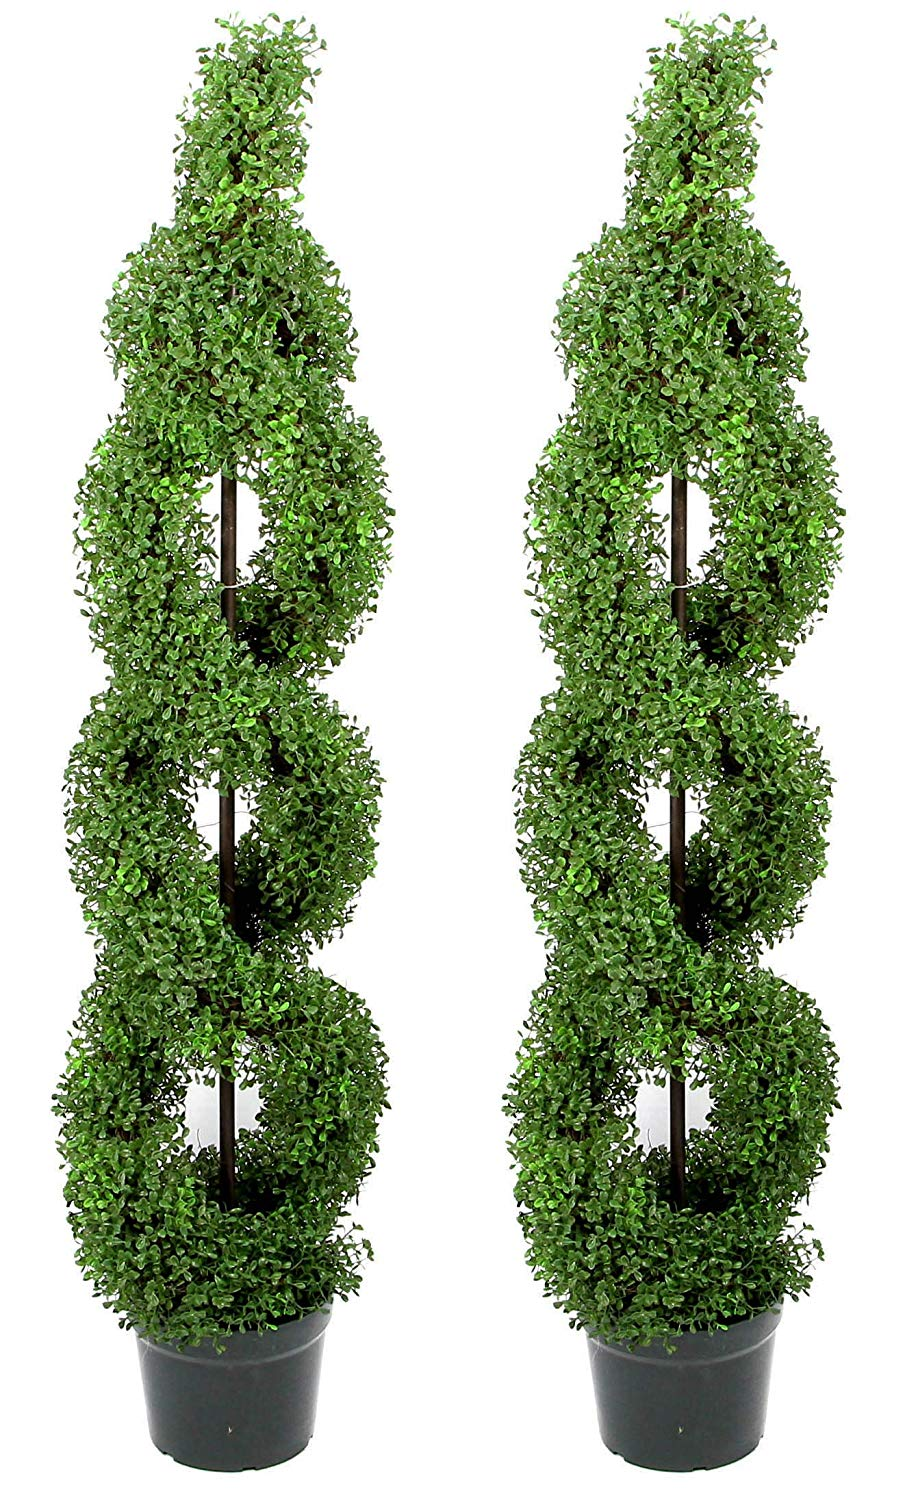 Double Spiral Topiary Plant Tree